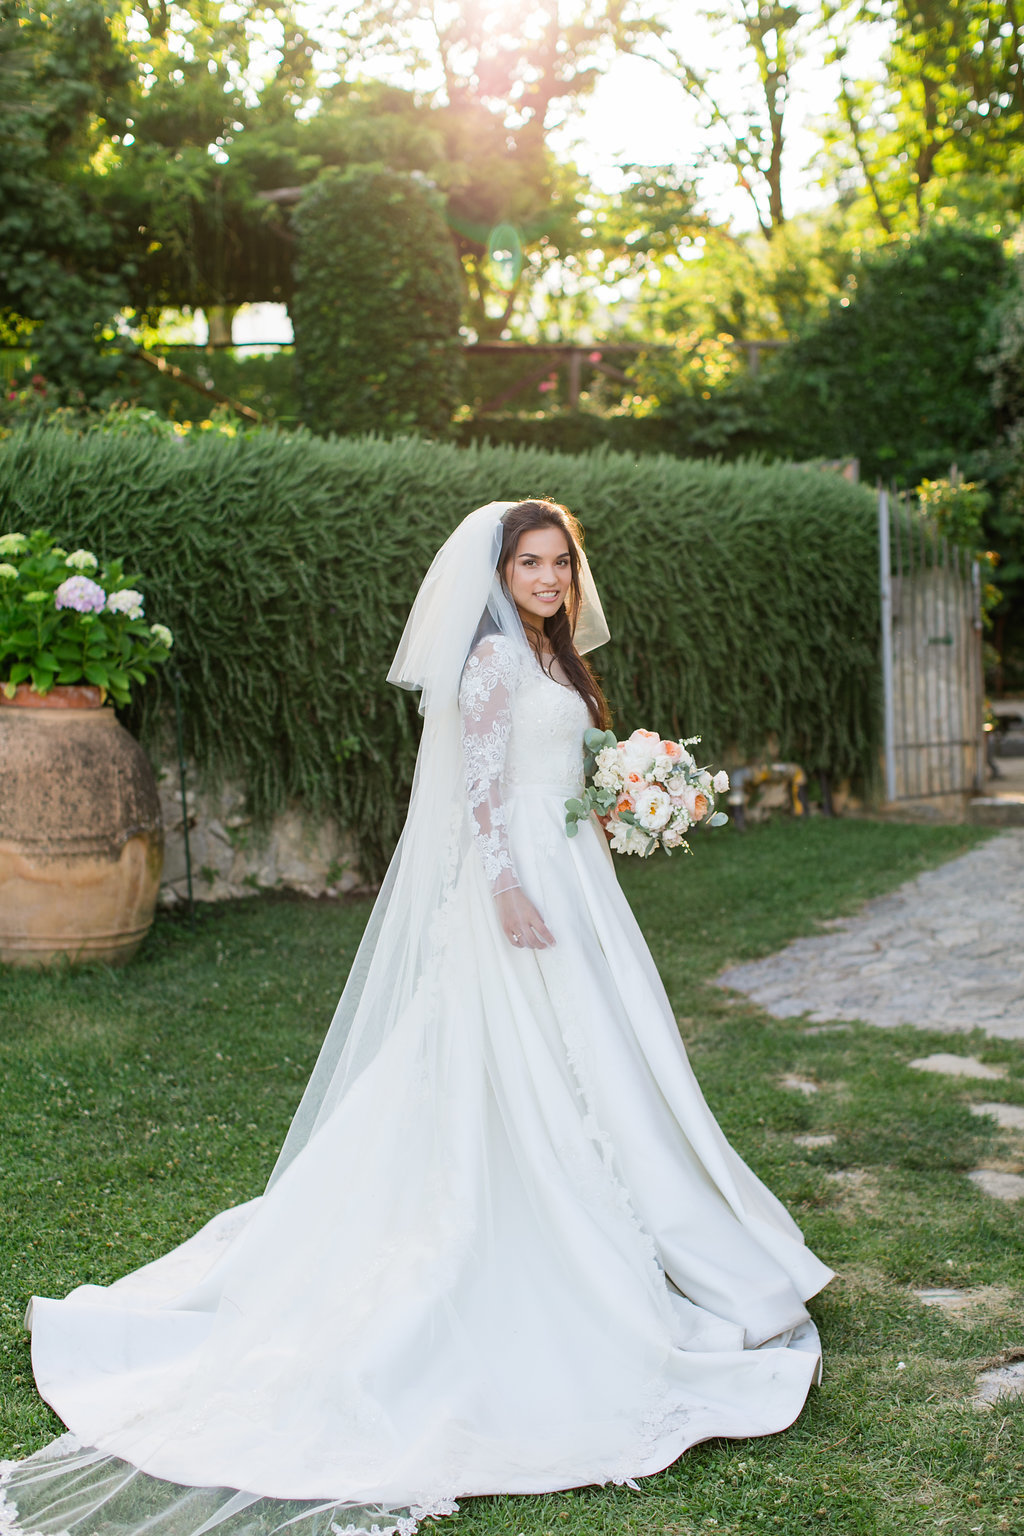 villa-cimbrone-amalfi-wedding-photographer-roberta-facchini-52